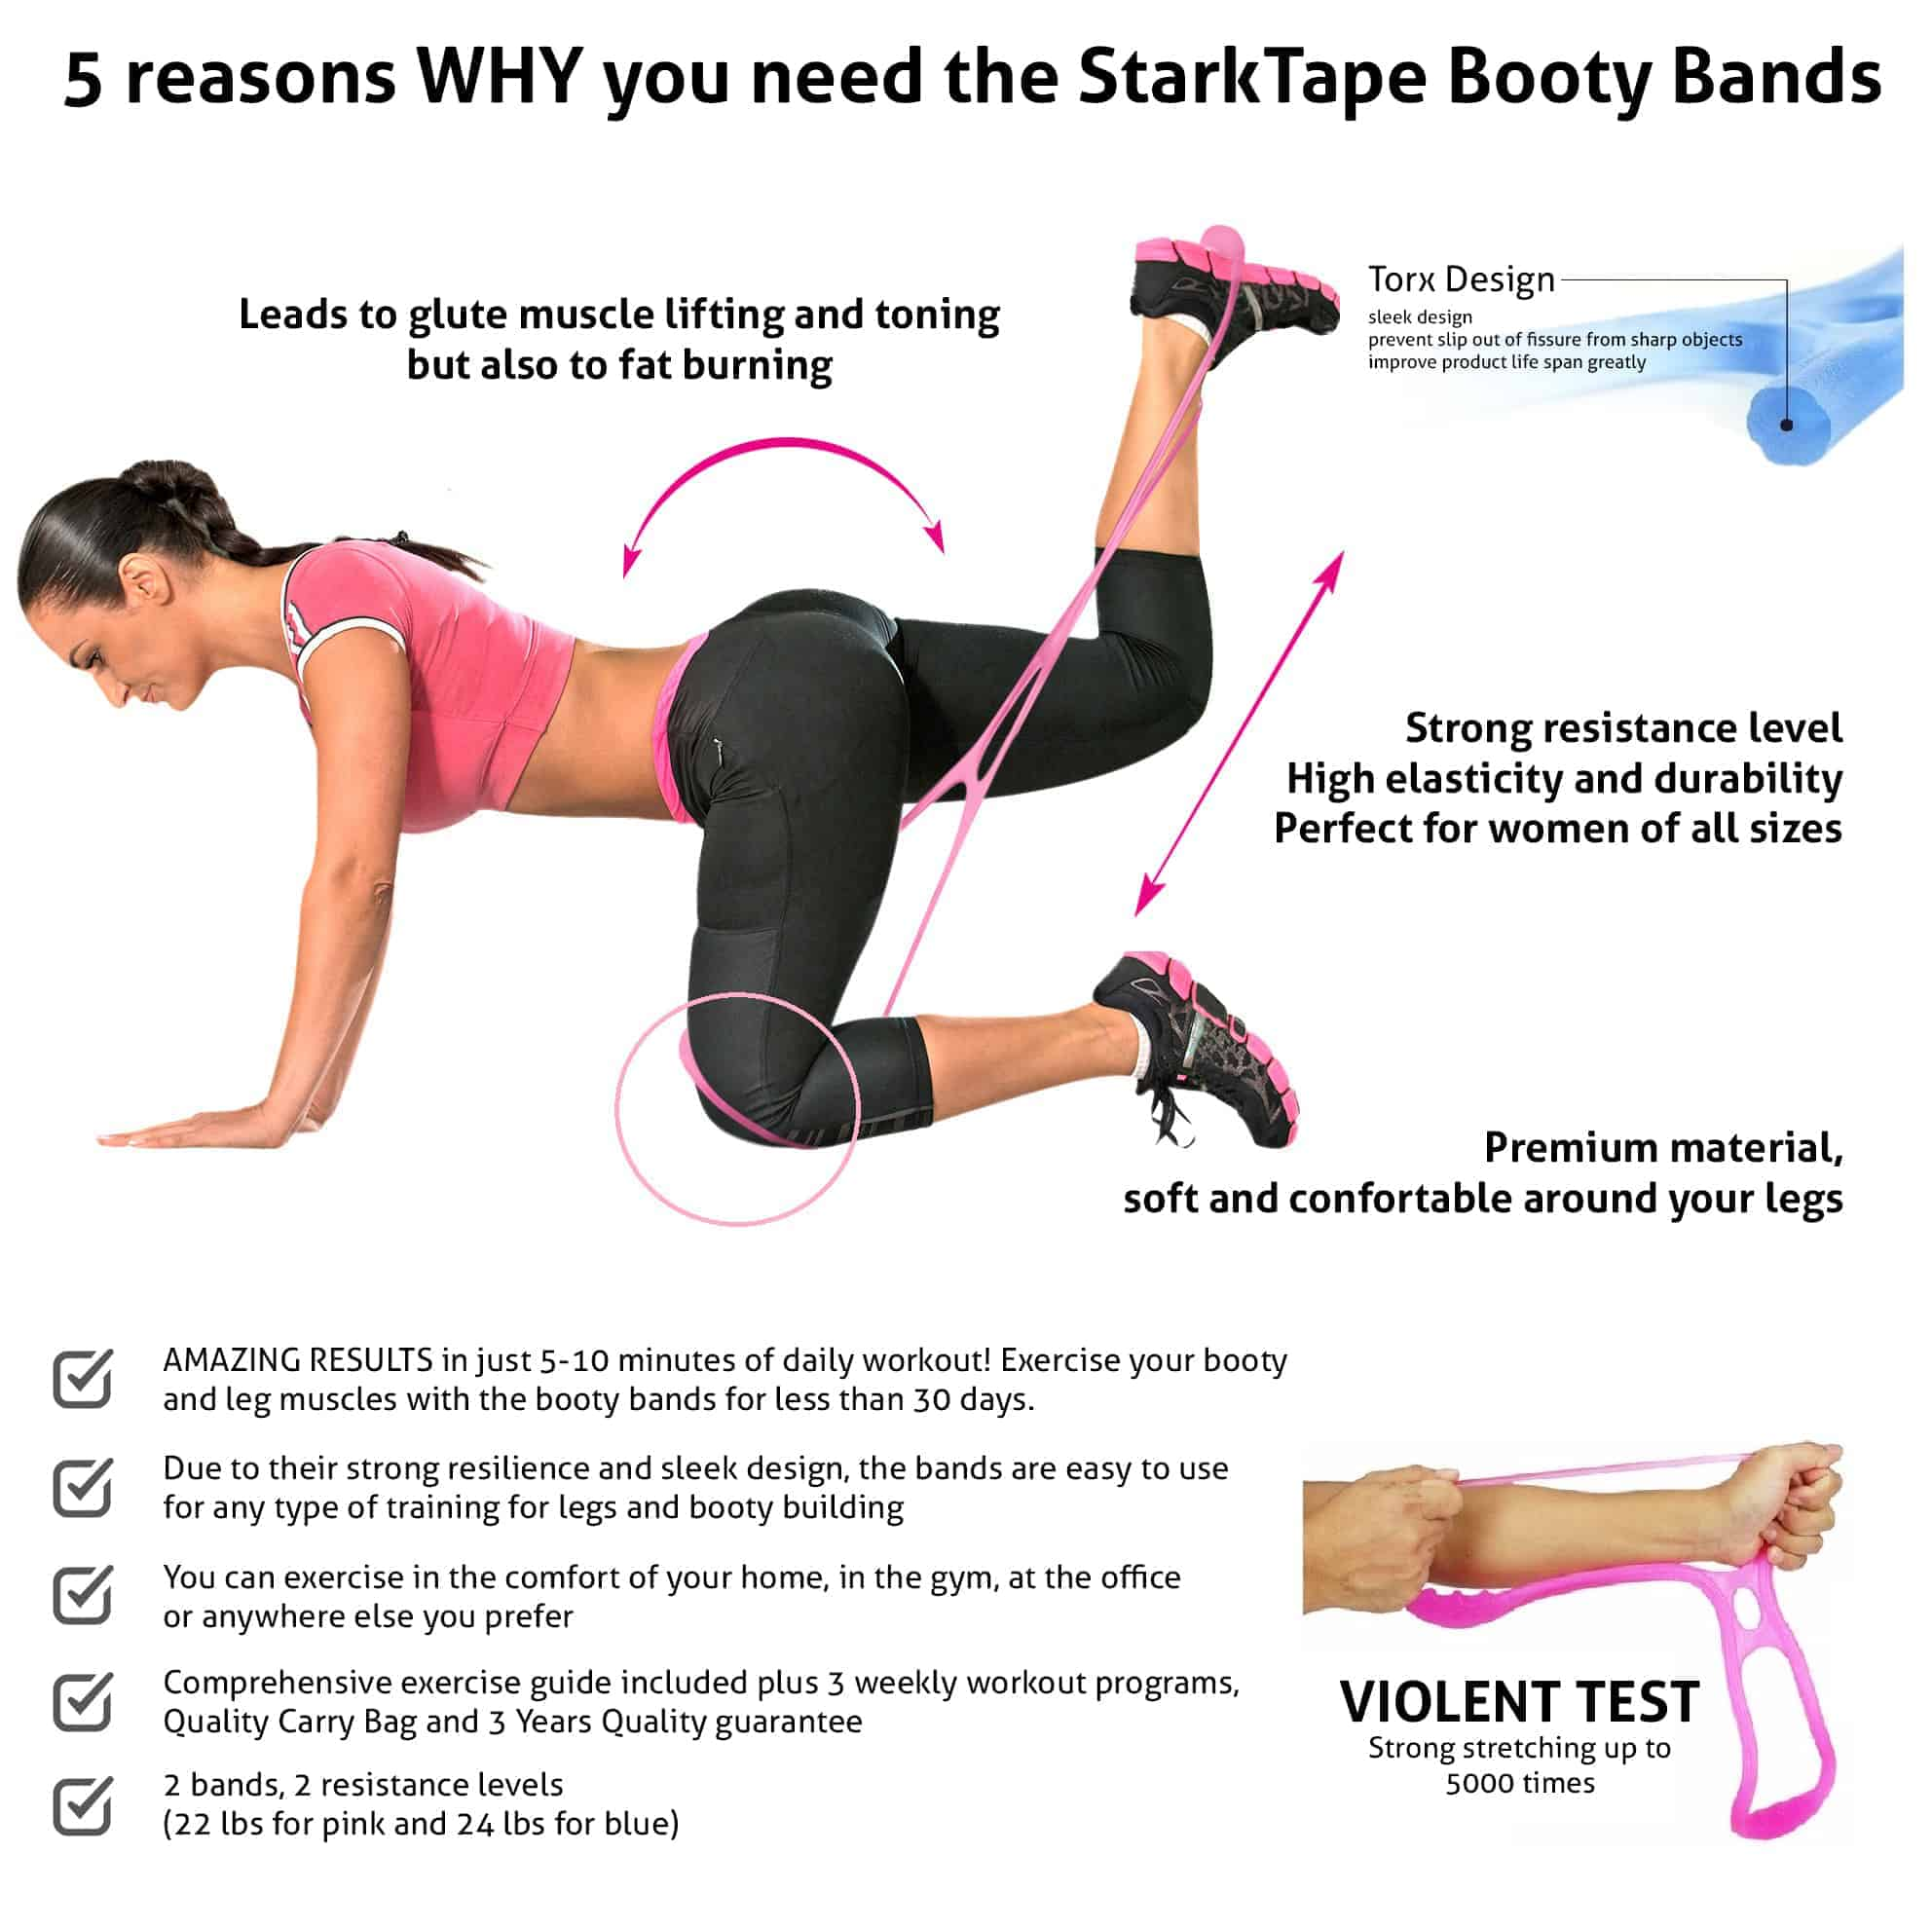 Exercise Bands Hips: THE PERFECT SHAPE FOR YOUR LEGS AND BUTT